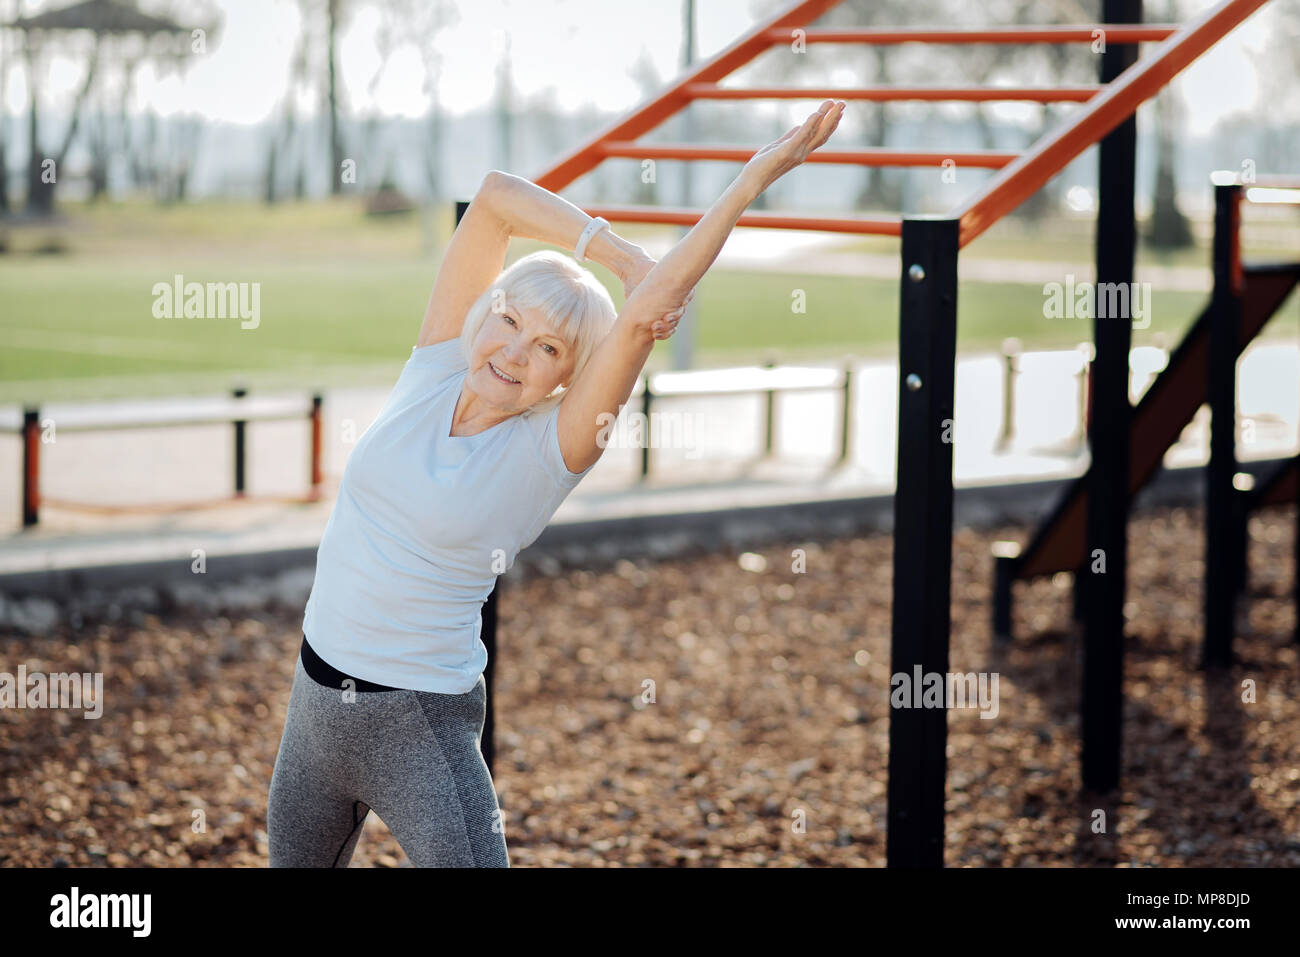 Delighted athletic woman exercising outdoors - Stock Image